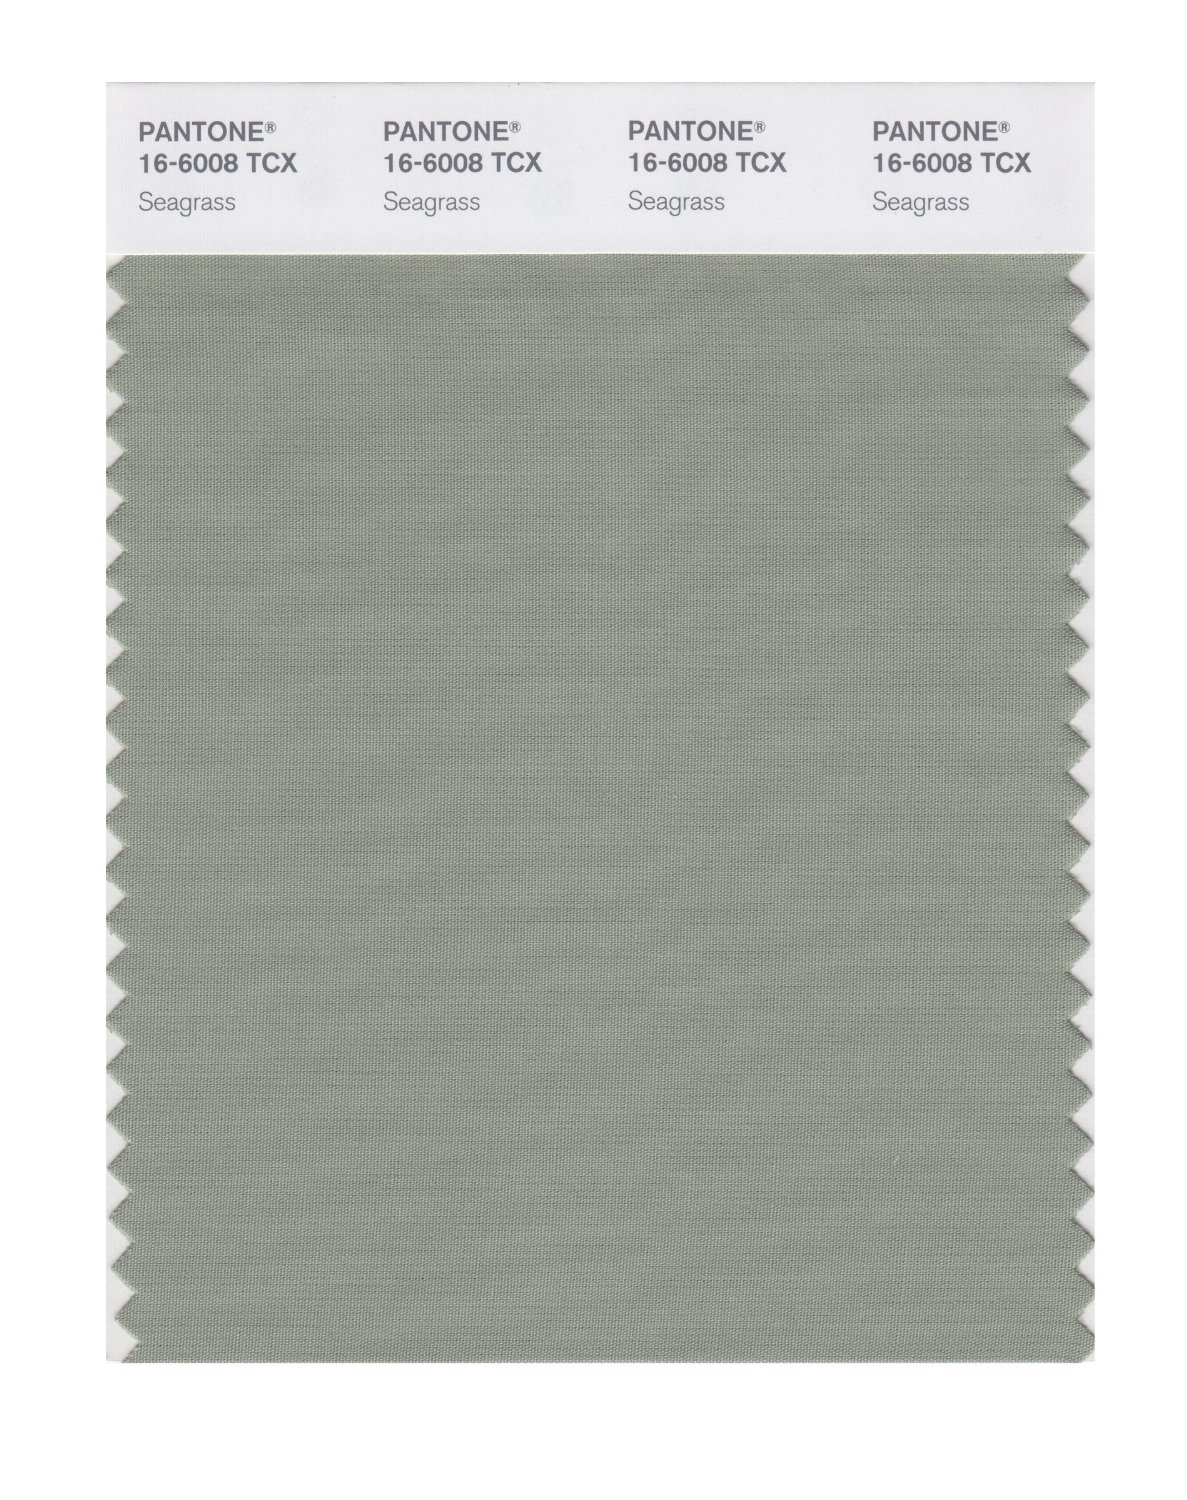 Pantone Smart Swatch 16-6008 Seagrass